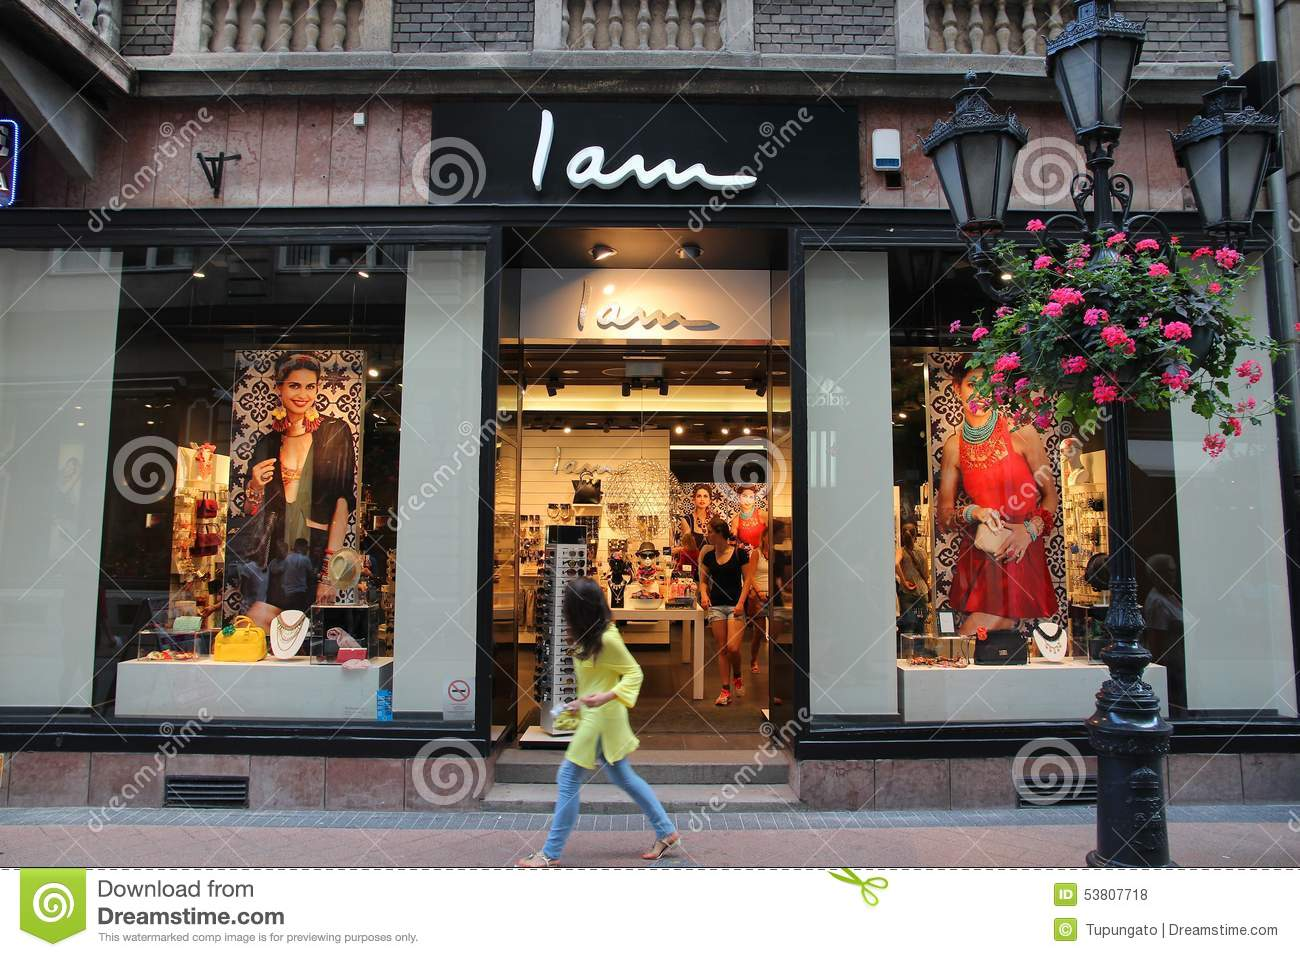 I.am clothing online store